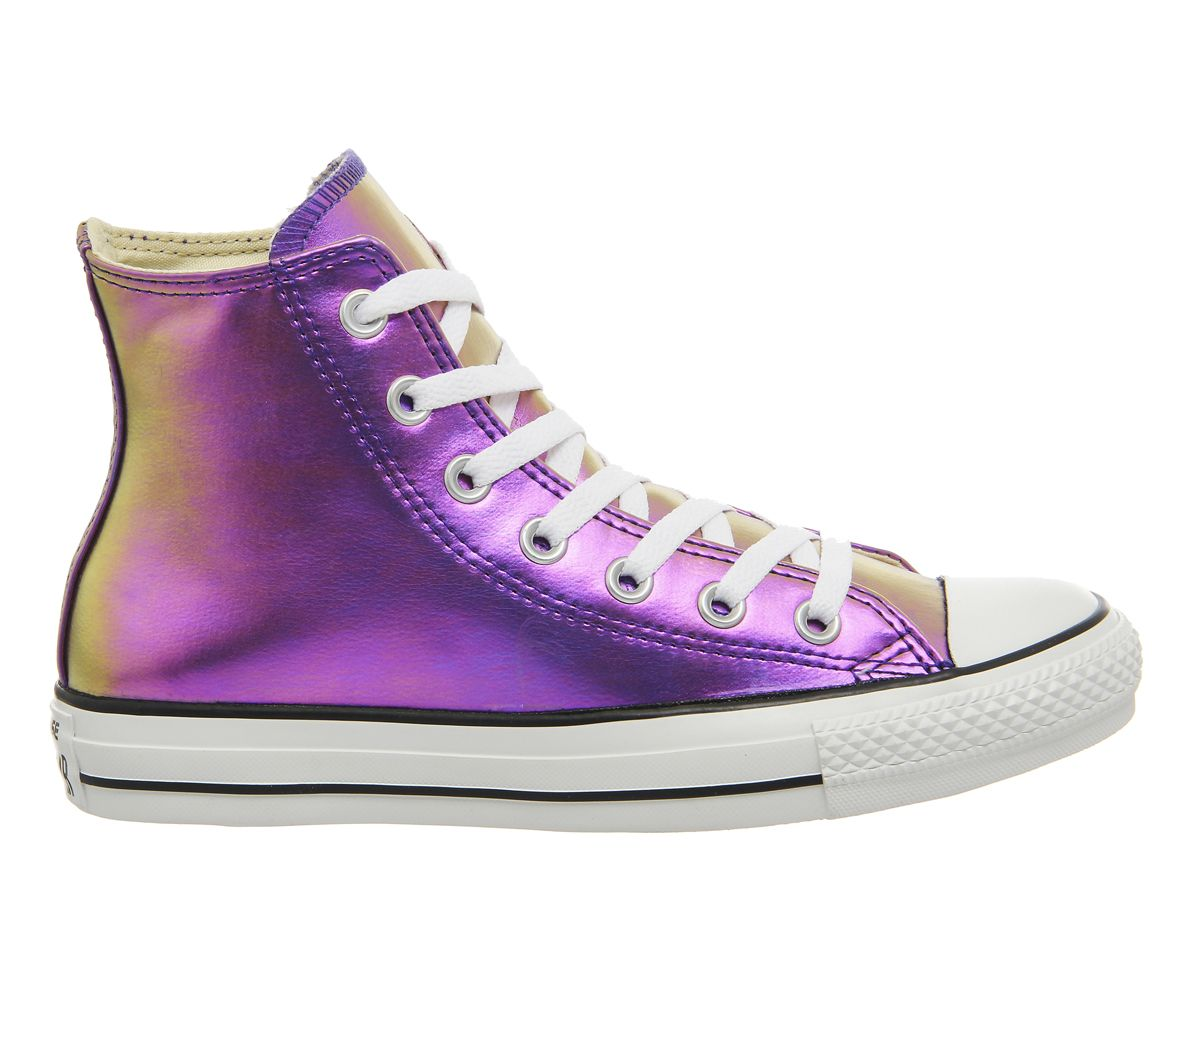 Buy Purple Iridescent Converse All Star Hi from OFFICE.co.uk.